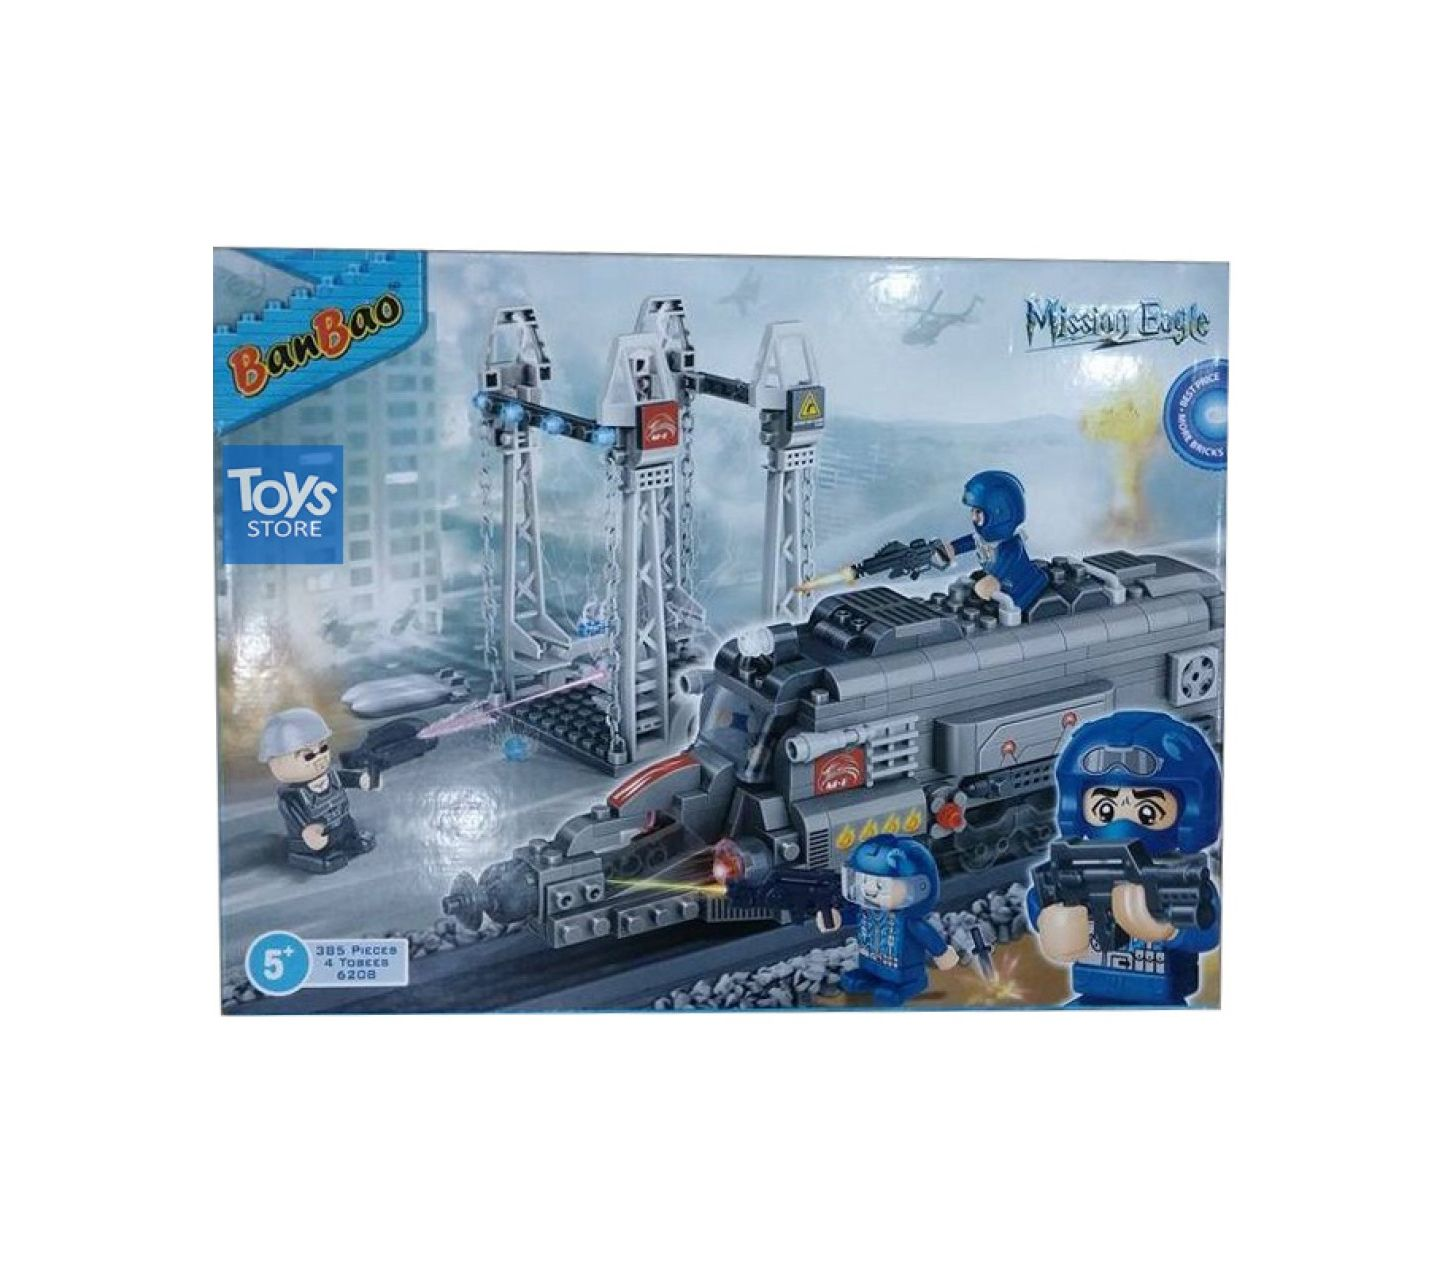 b6cd220adf2 Kid's Store :: Toys & Games :: SPECIAL FORCES TRAIN - MISSION EAGLE SERIES  By Toys Store - Savers.pk - Everything you are looking for!